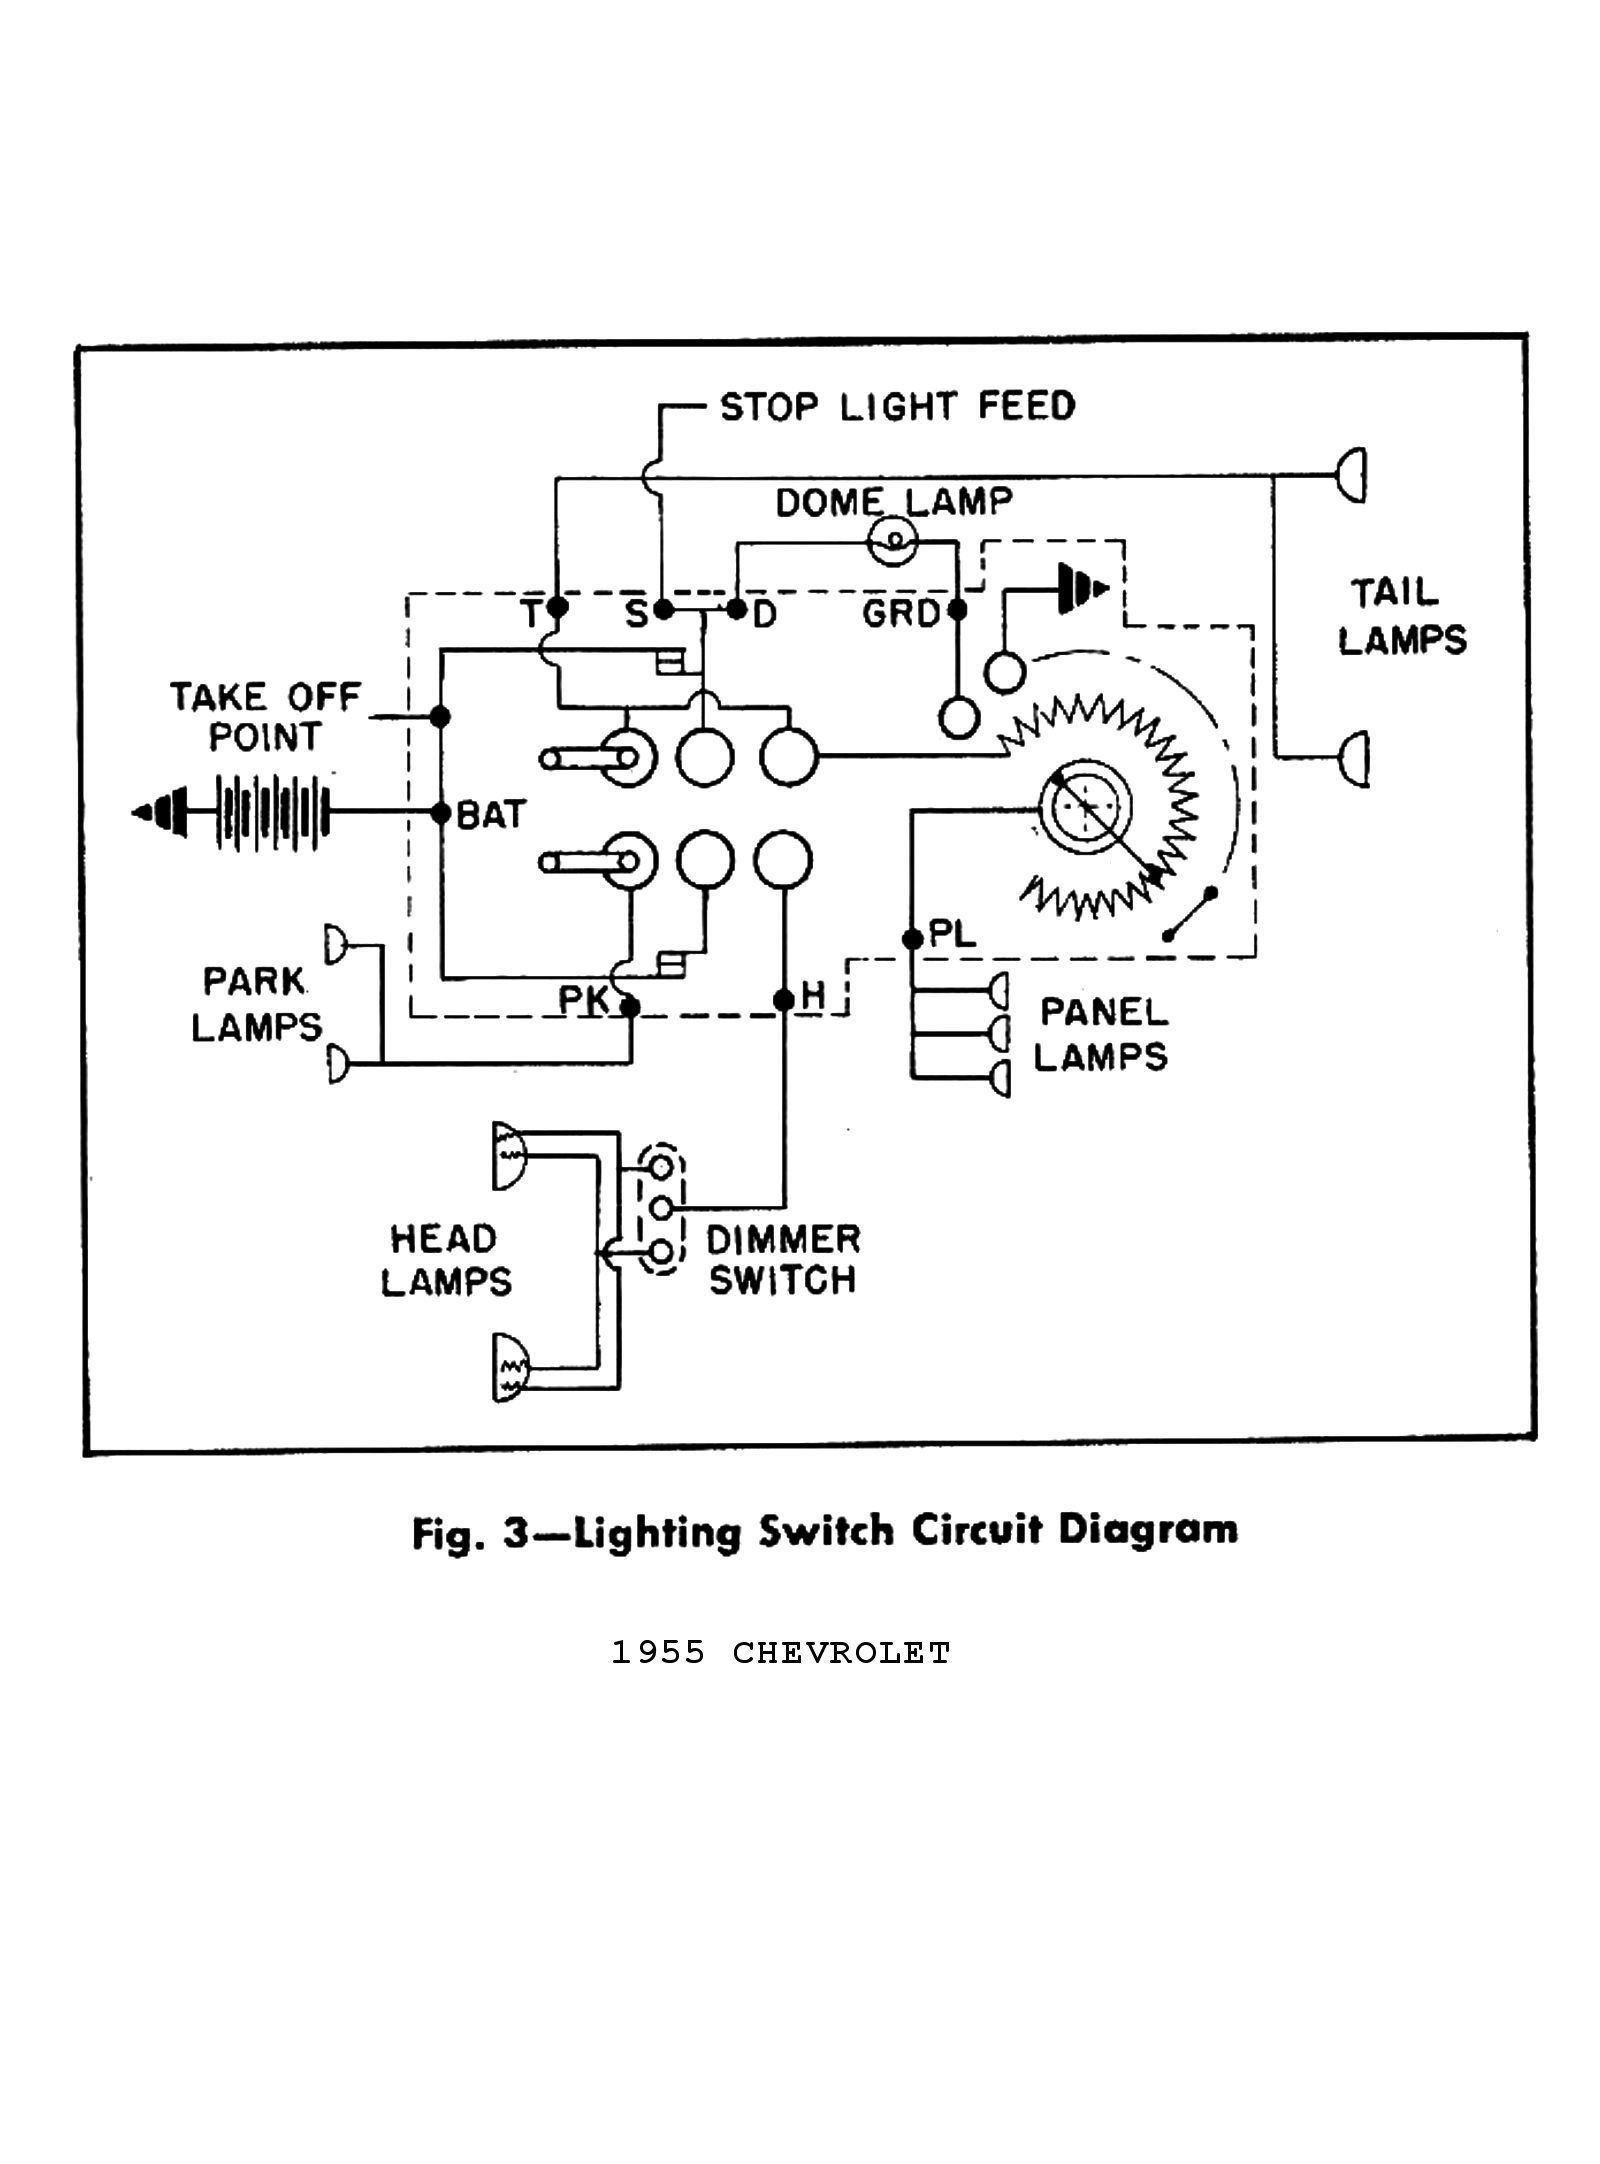 chevy ignition wiring diagram wiring diagram valueuniversal ignition switch wiring diagram inspirational 1955 chevy of 2002 [ 1600 x 2164 Pixel ]